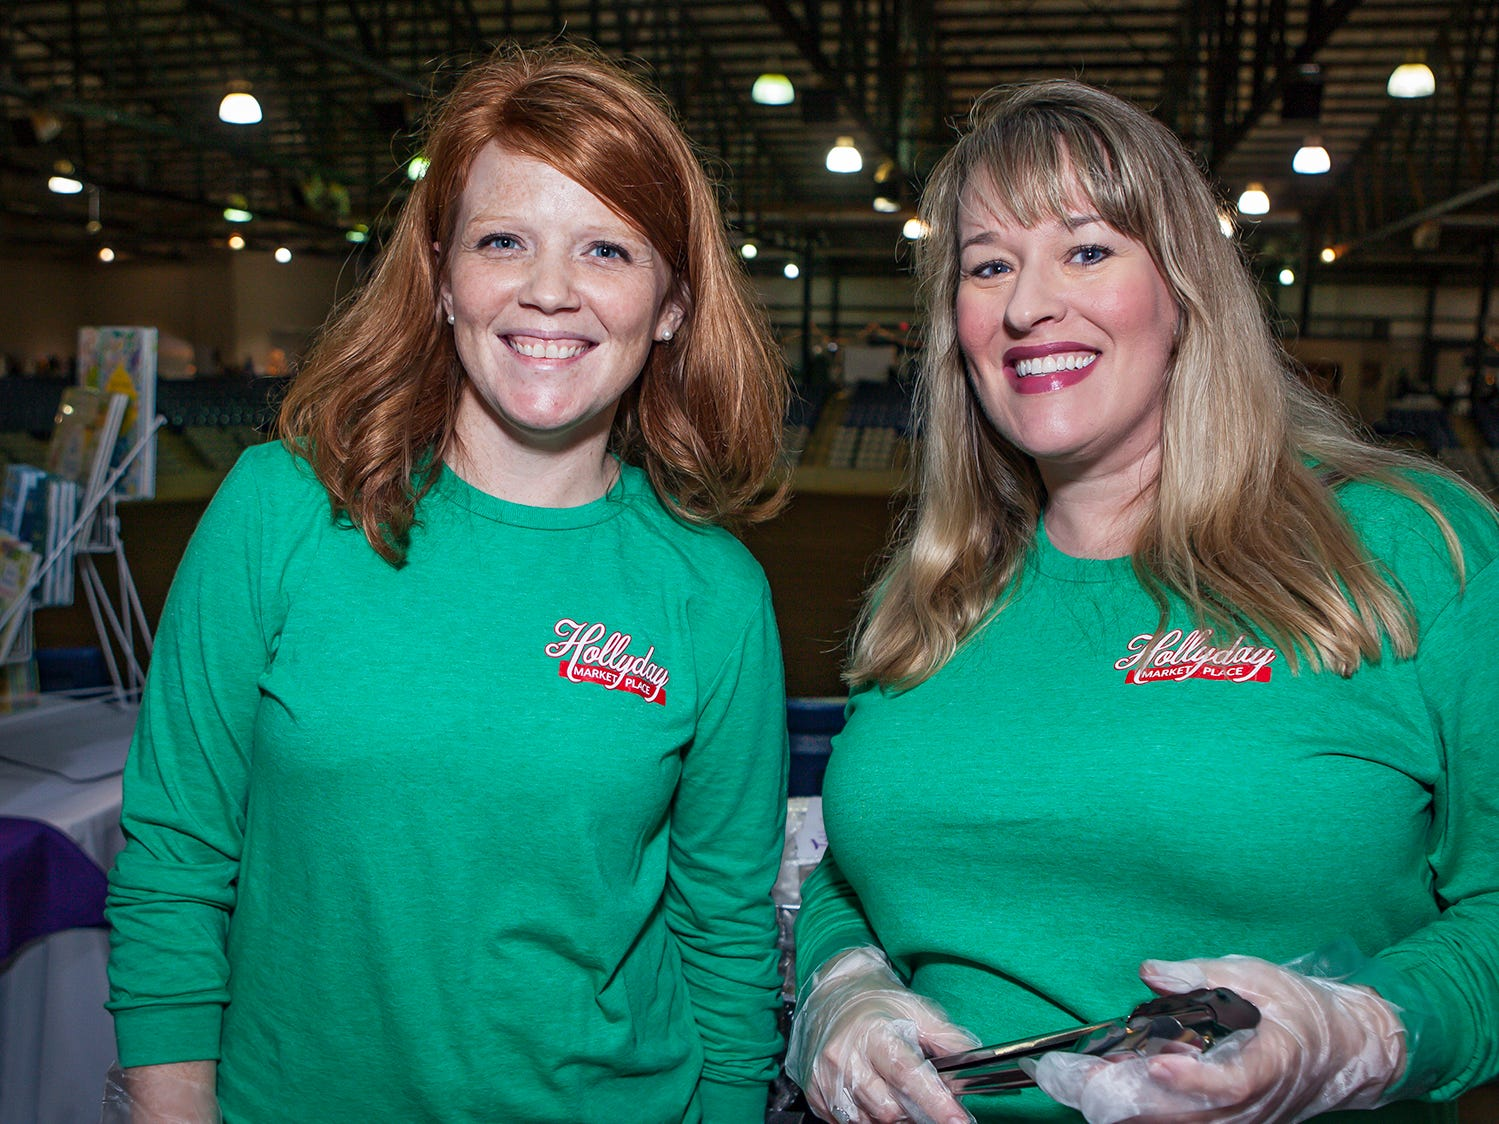 Heather Szaroleta and Misty Harlan at Mistletoe & Martinis on Friday, Nov. 30, the preview party for the Junior League of Murfreesboro's 2018 Hollyday Marketplace.